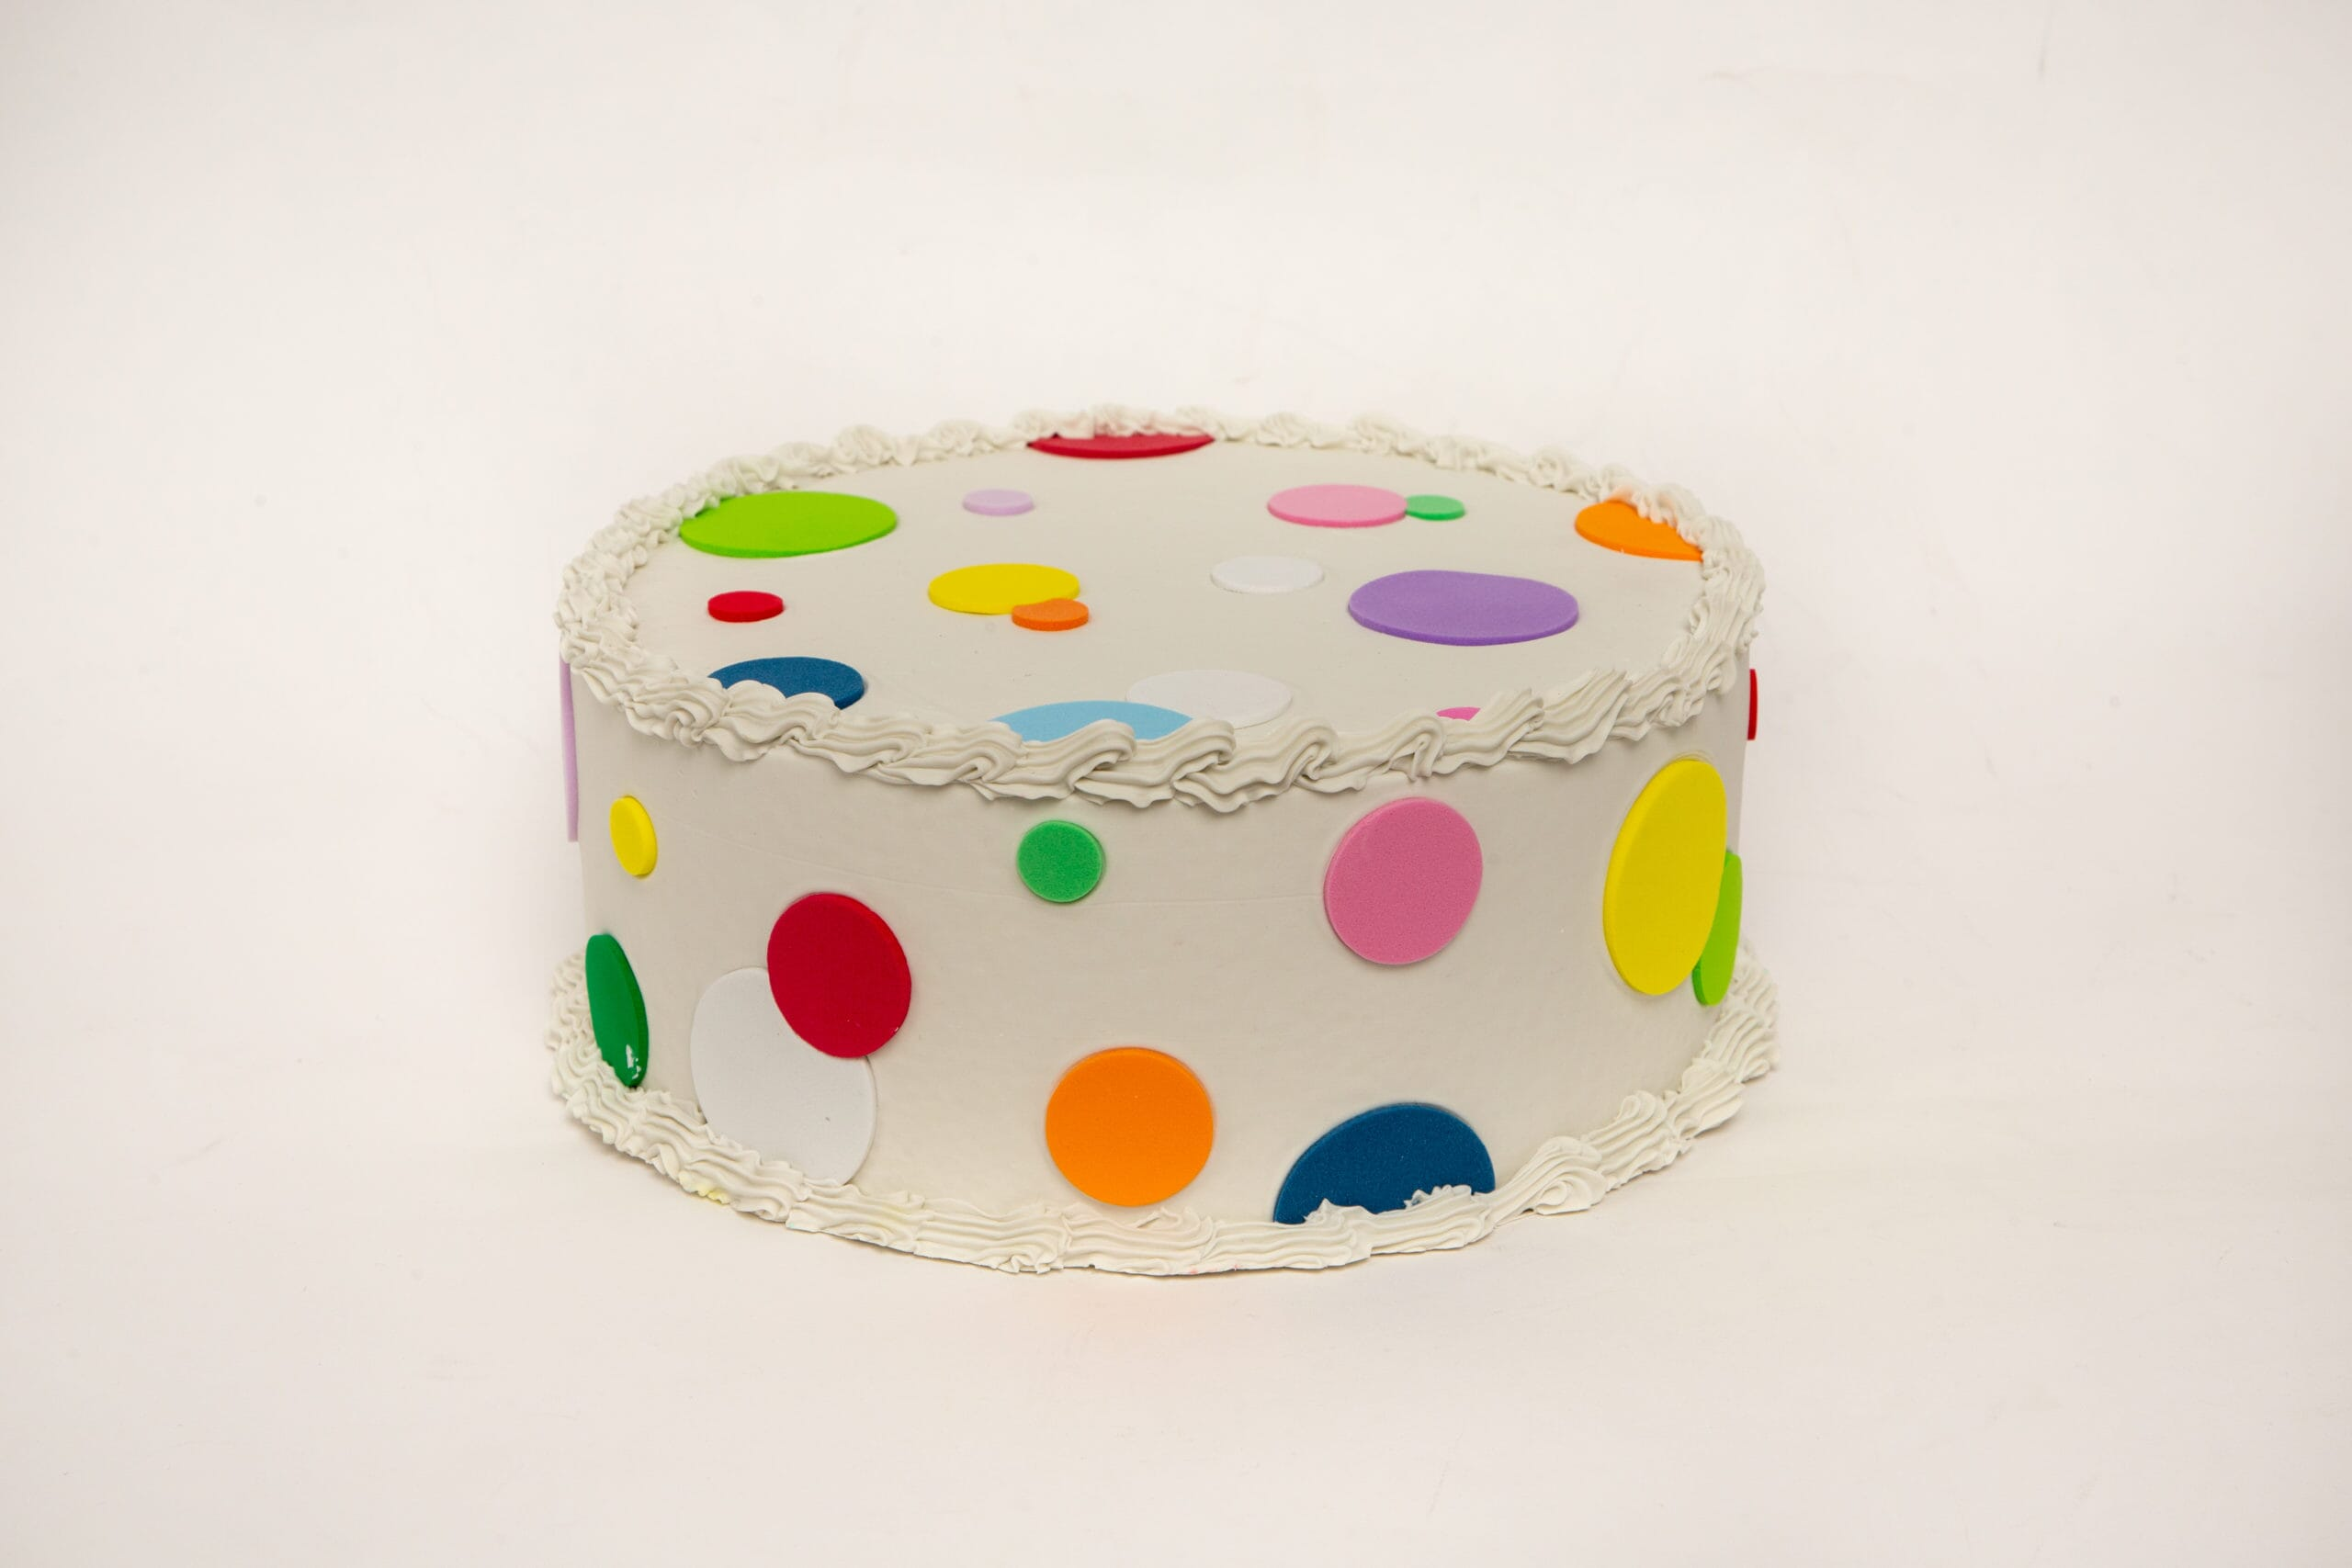 Fake Large Vanilla Frosted Cake with Multi-Color Polka Dots